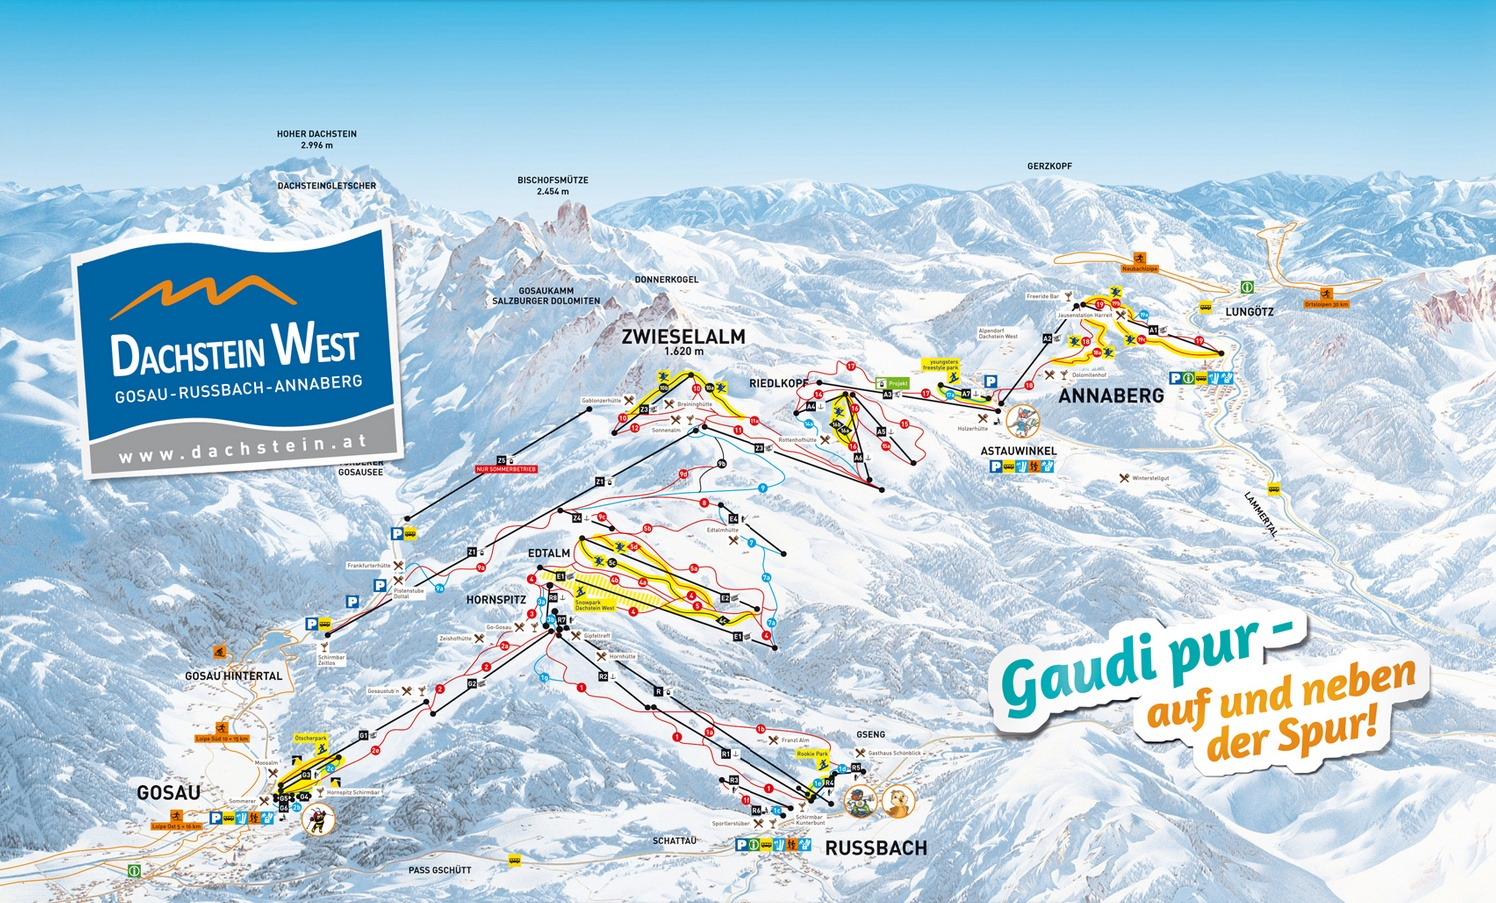 Ski resort Gosau - Dachstein West